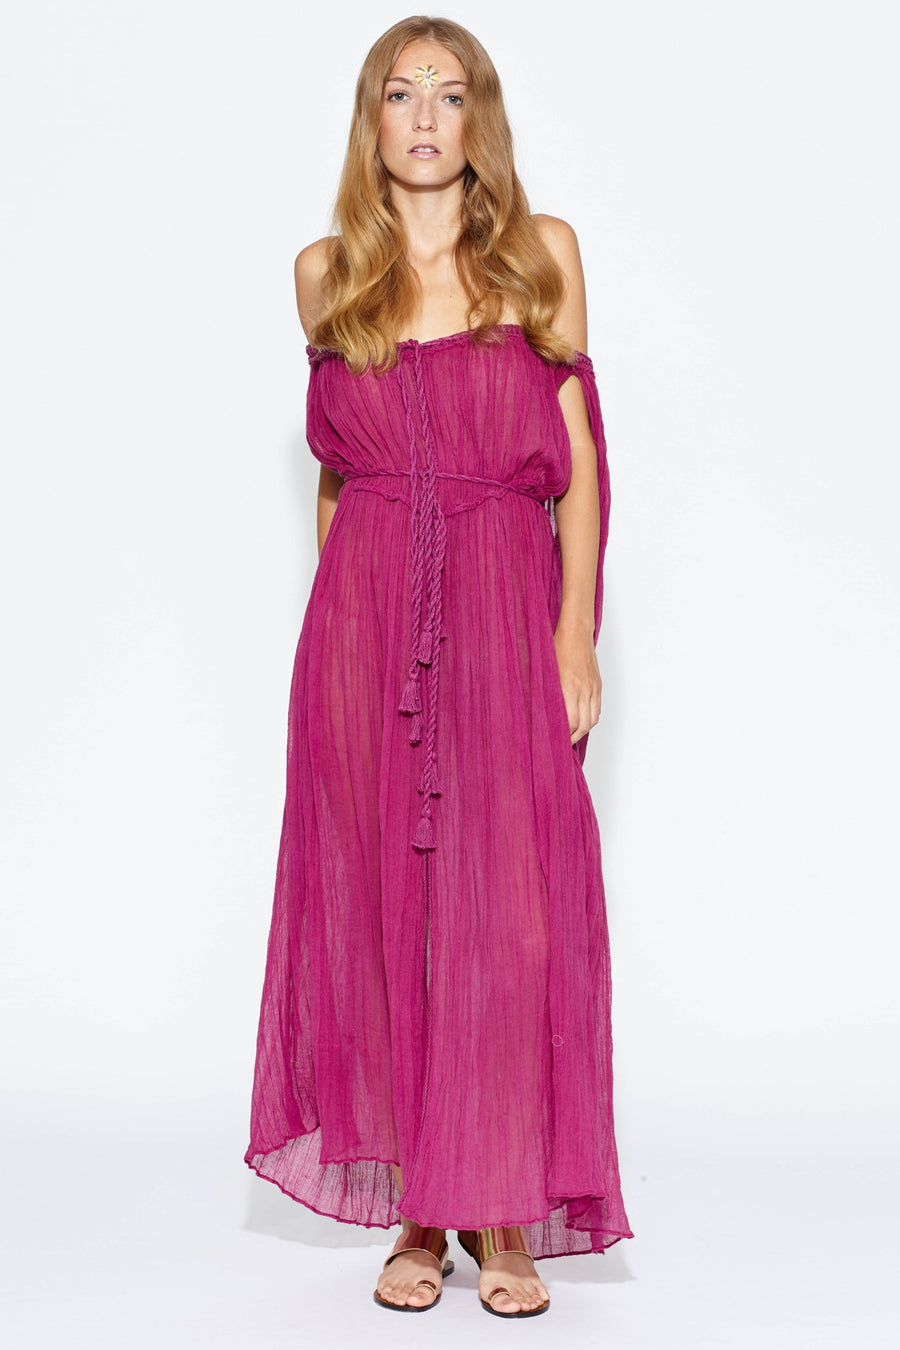 This is a photo of a woman wearing a magenta cotton gauze floor-length maxi coverup that falls off both shoulder and ties around center front chest area and waistline.